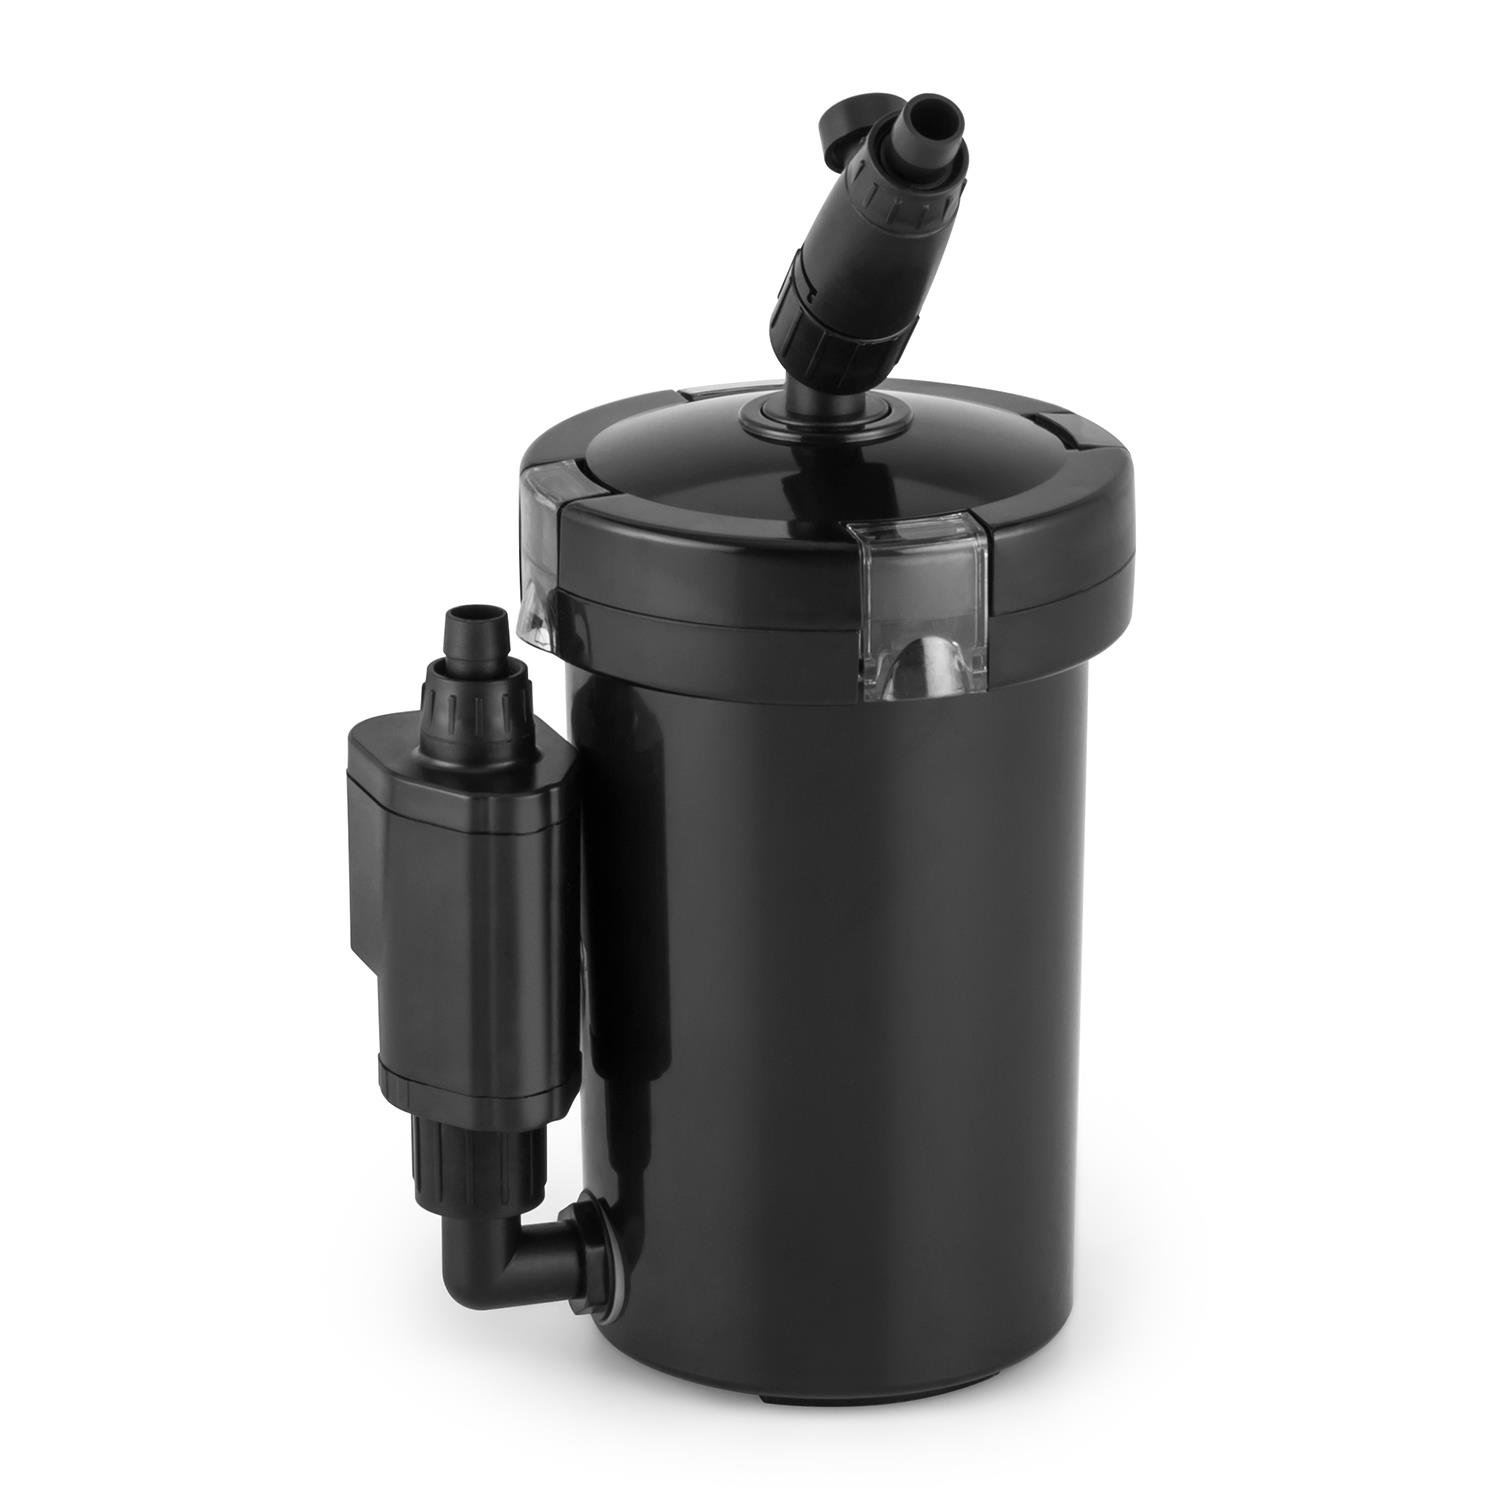 6UVL Waldbeck Clearflow 6 UVL Aquarium External Filter • 6W • 4-Stage Filter • 400 l   h • Quiet • Economical • Easy Cleaning with Quick Coupling System • Individually Removable Filter Baskets • Black